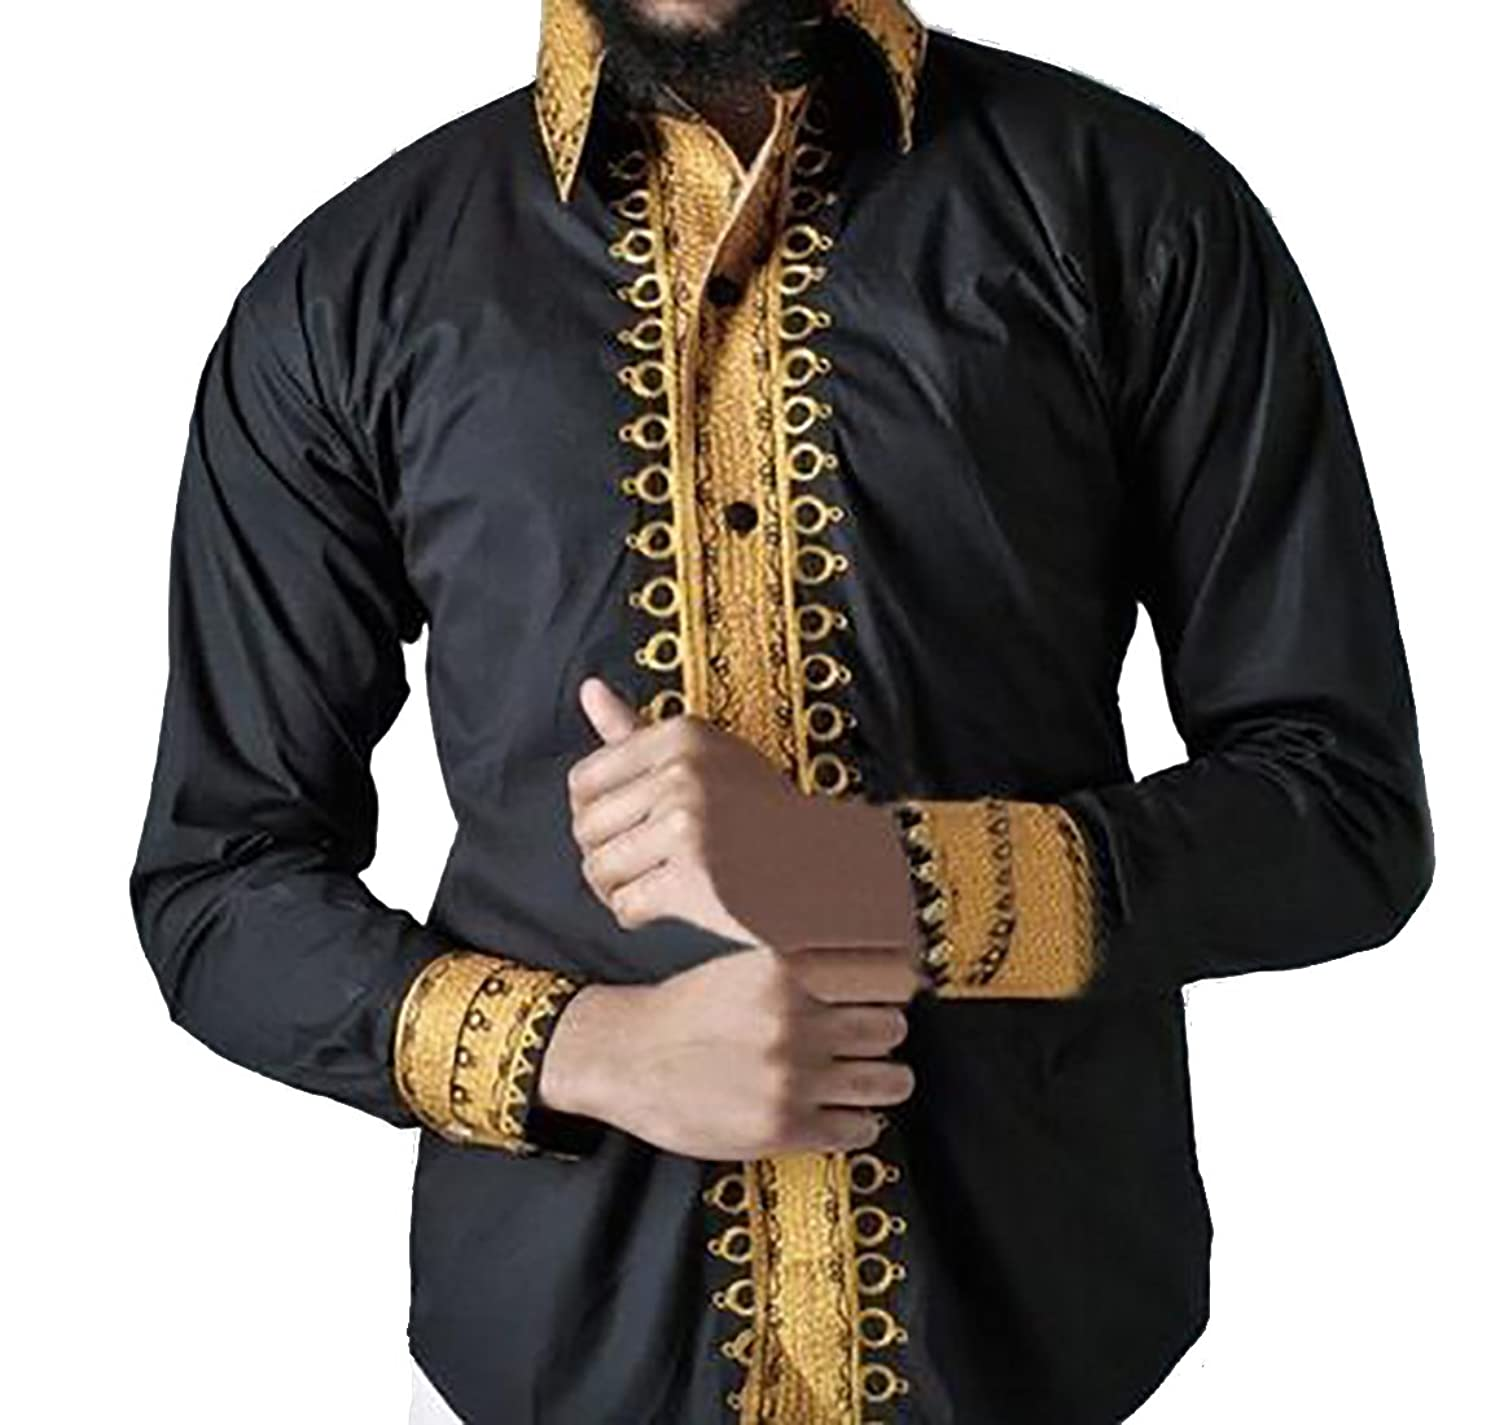 MK988 Men African Print Dashiki Long Sleeve Buttons Vintage T-Shirt